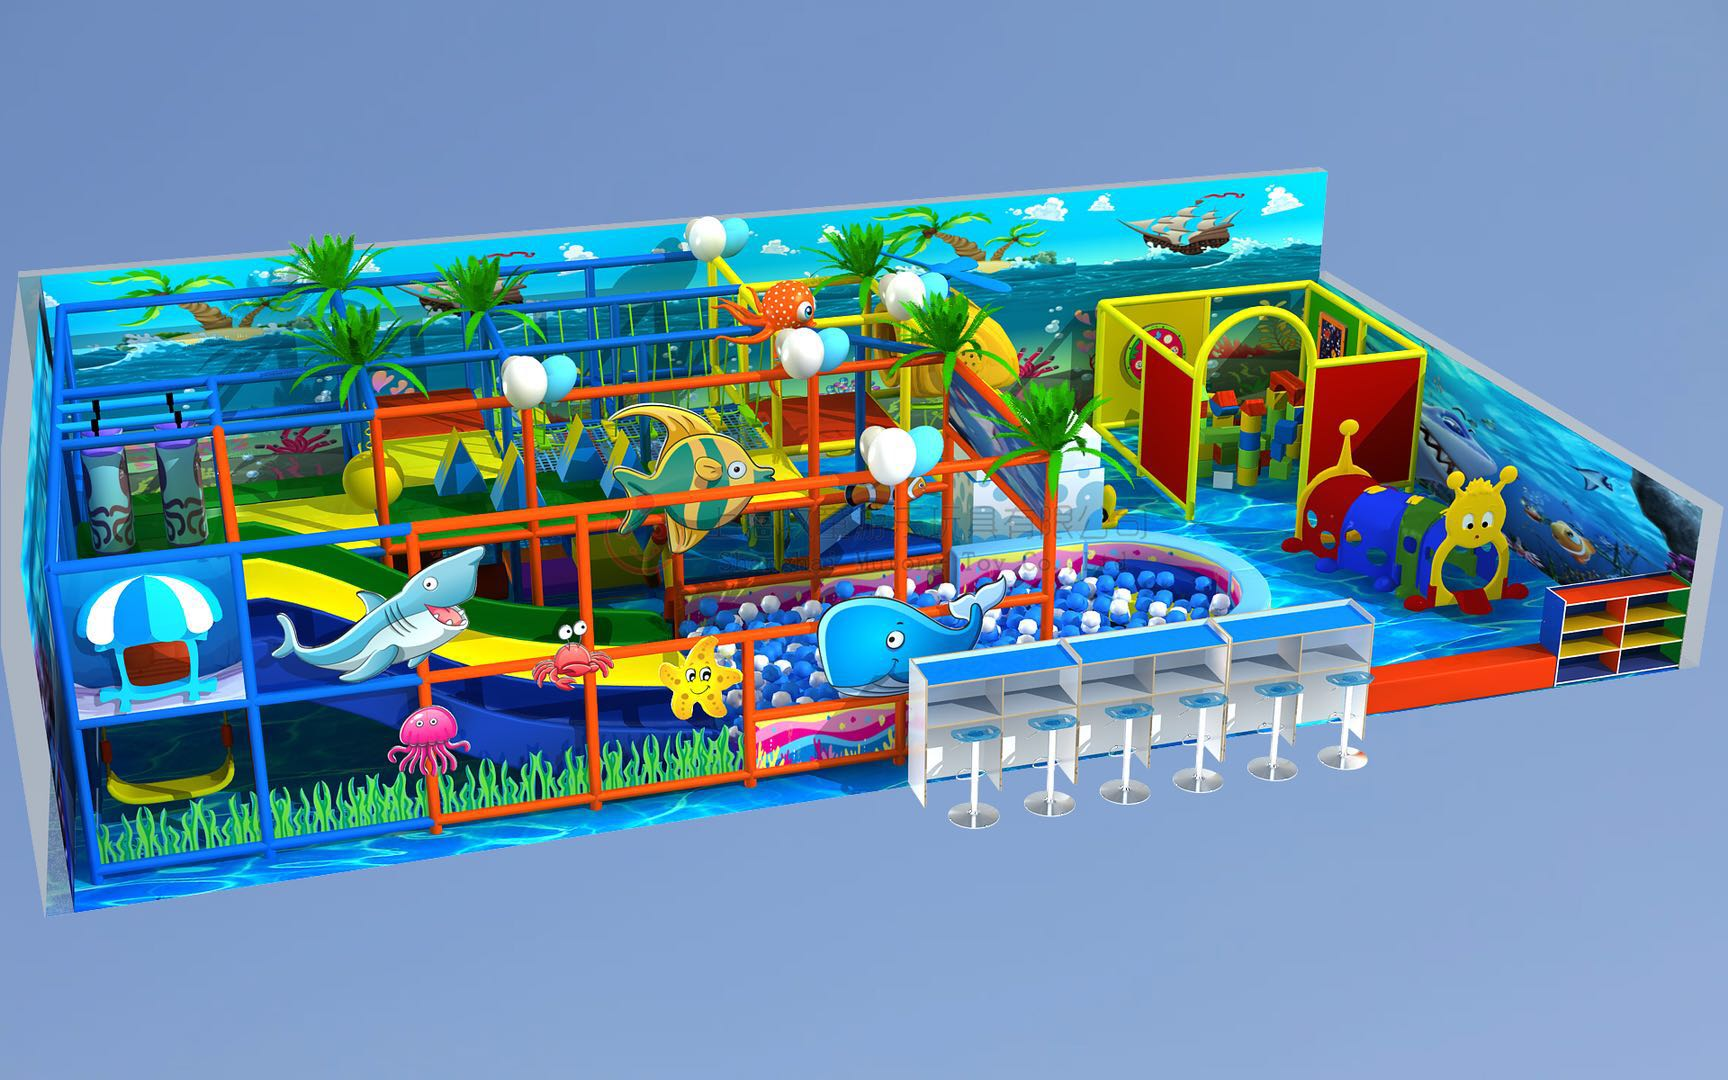 Best Selling cheap and colorful indoor playground equipment for playground Featured Image